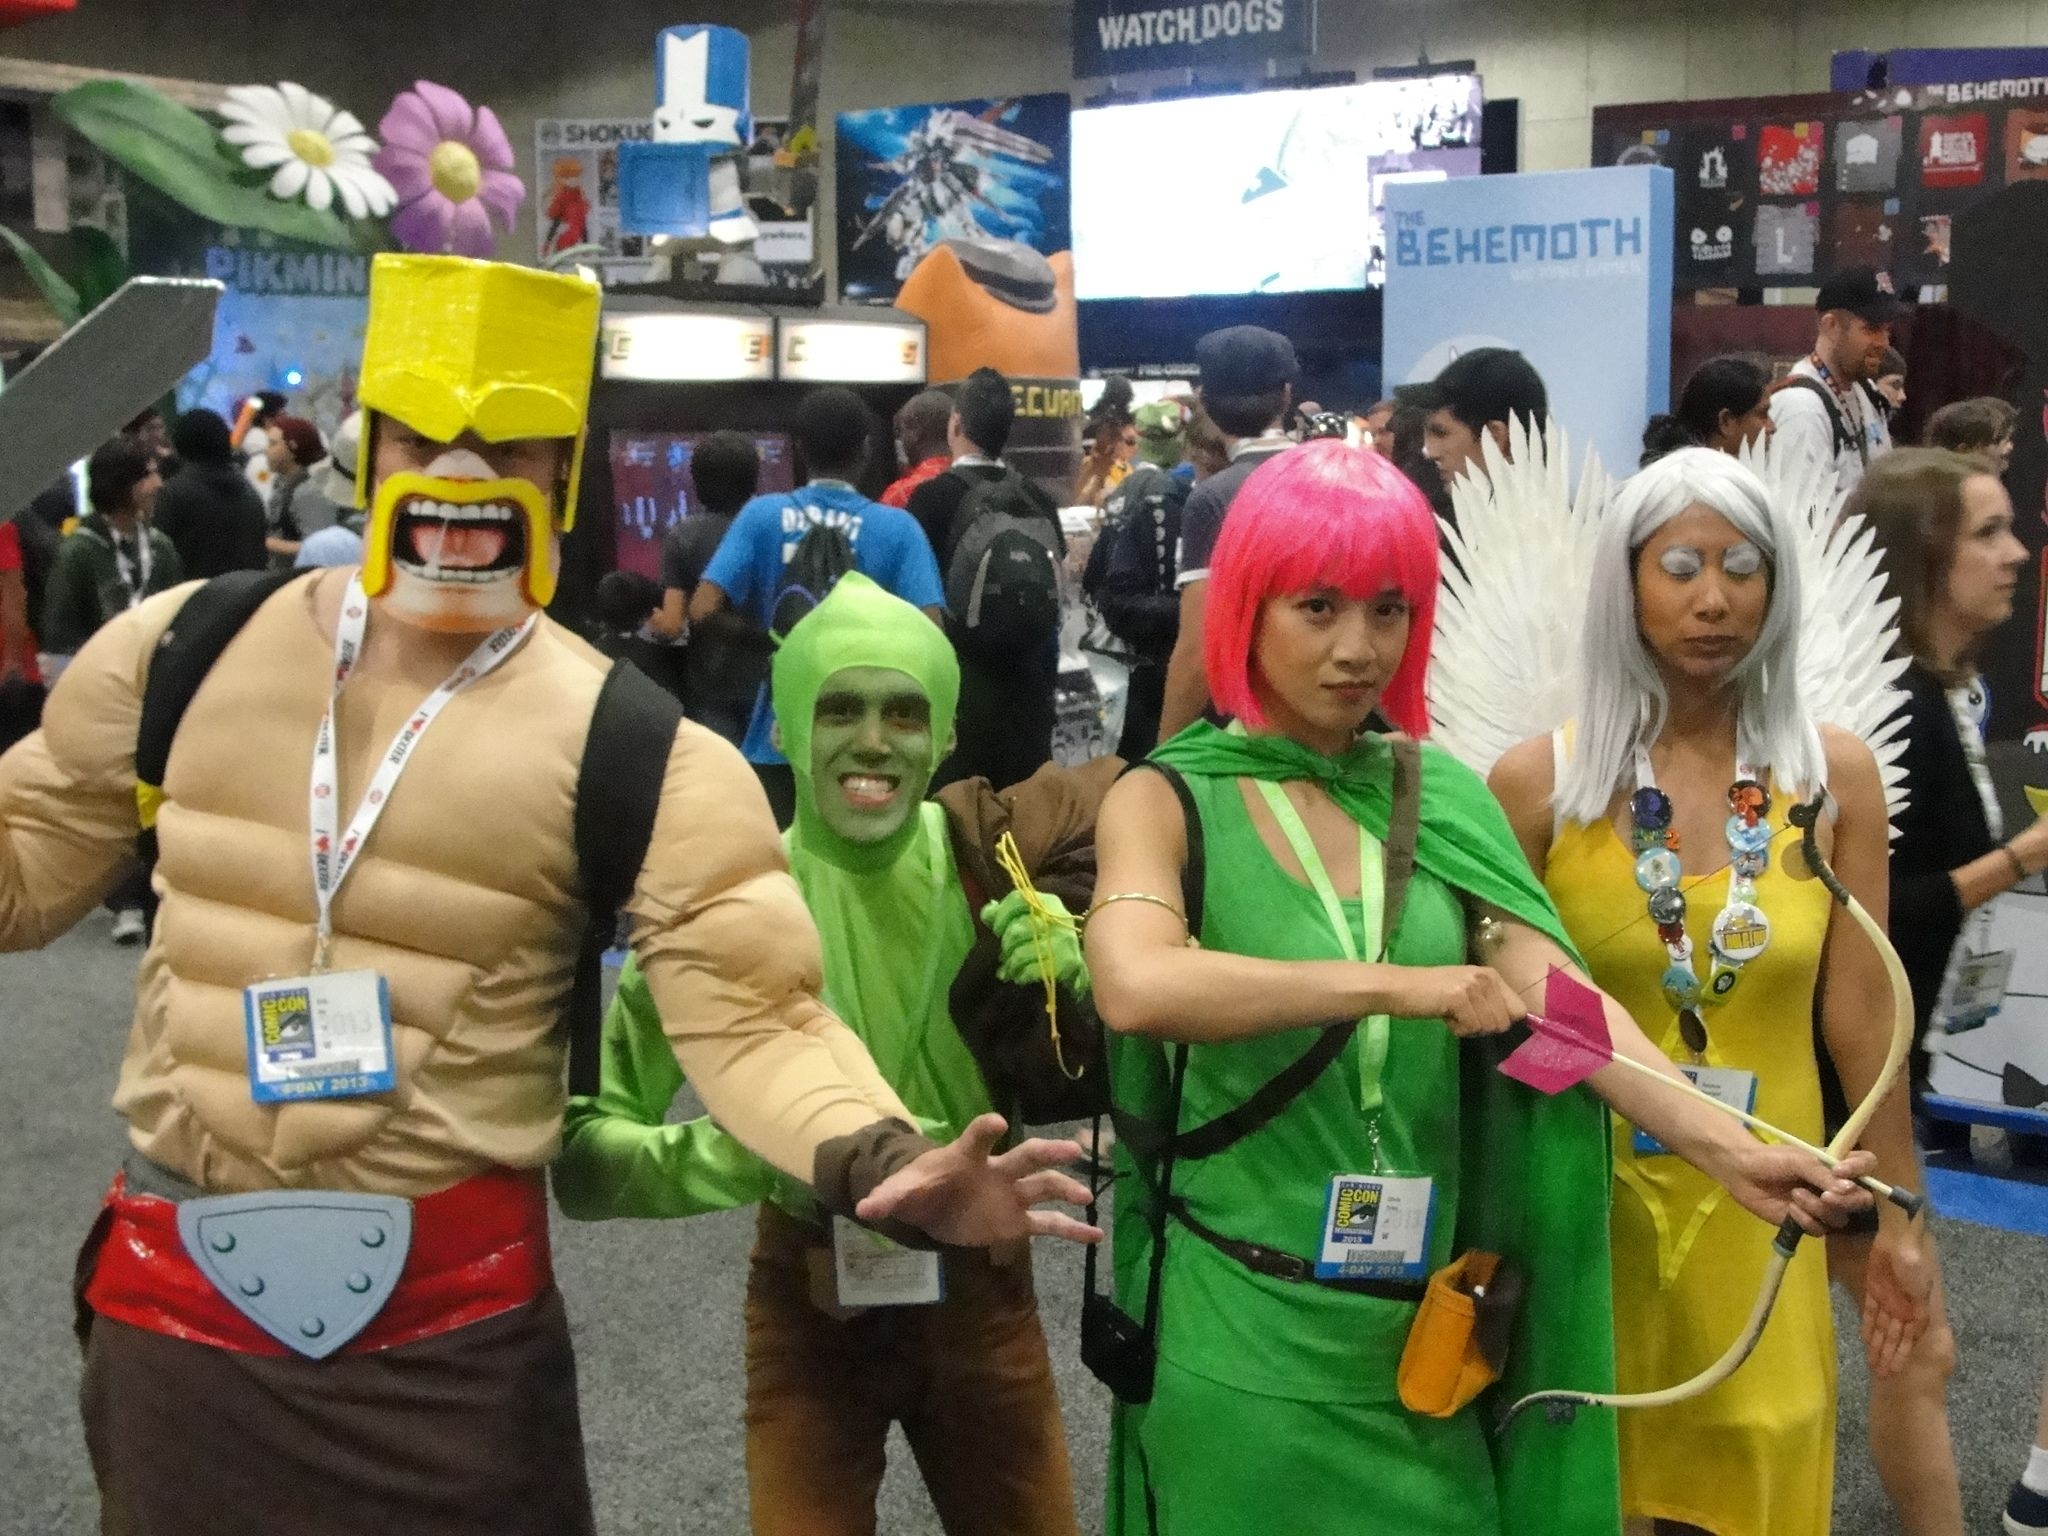 Clash Of Clans | HCG Recipes 4 P2 | Pinterest | Costumes, Cosplay ...